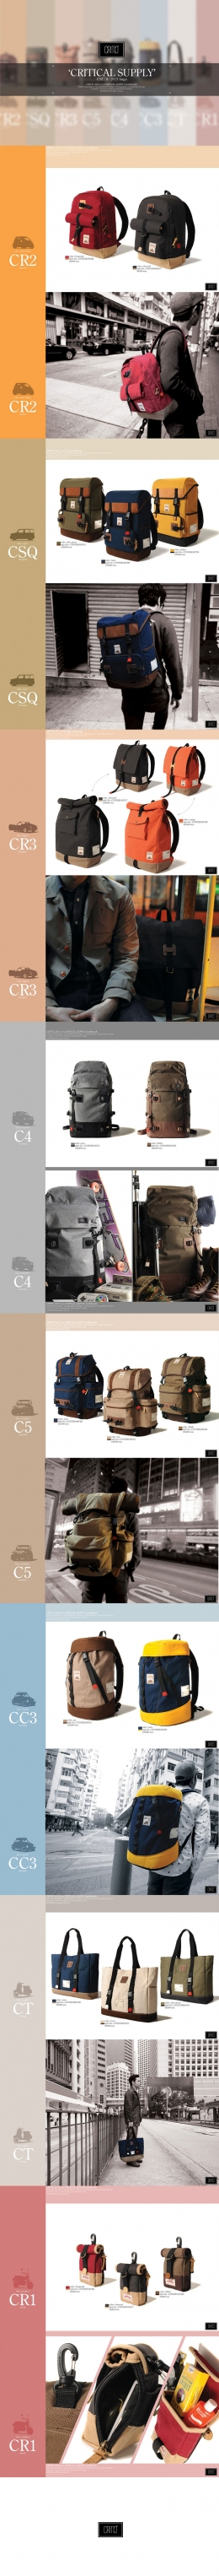 [크리틱] 2013 BAG LINE ′CRITICAL SUPPLY′